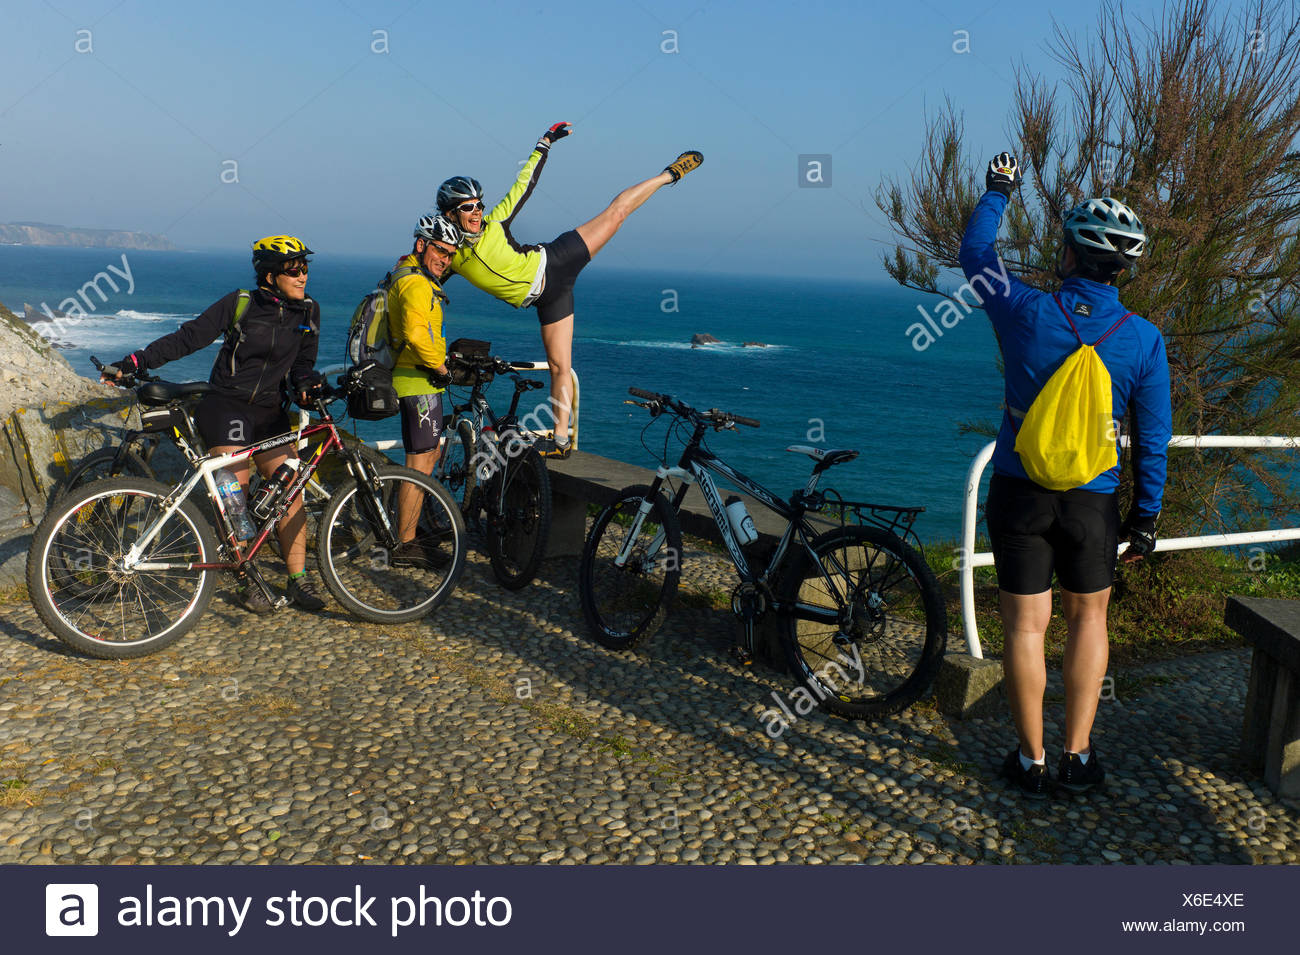 A cyclist does an arabesque on a stone wall above the ocean. - Stock Image